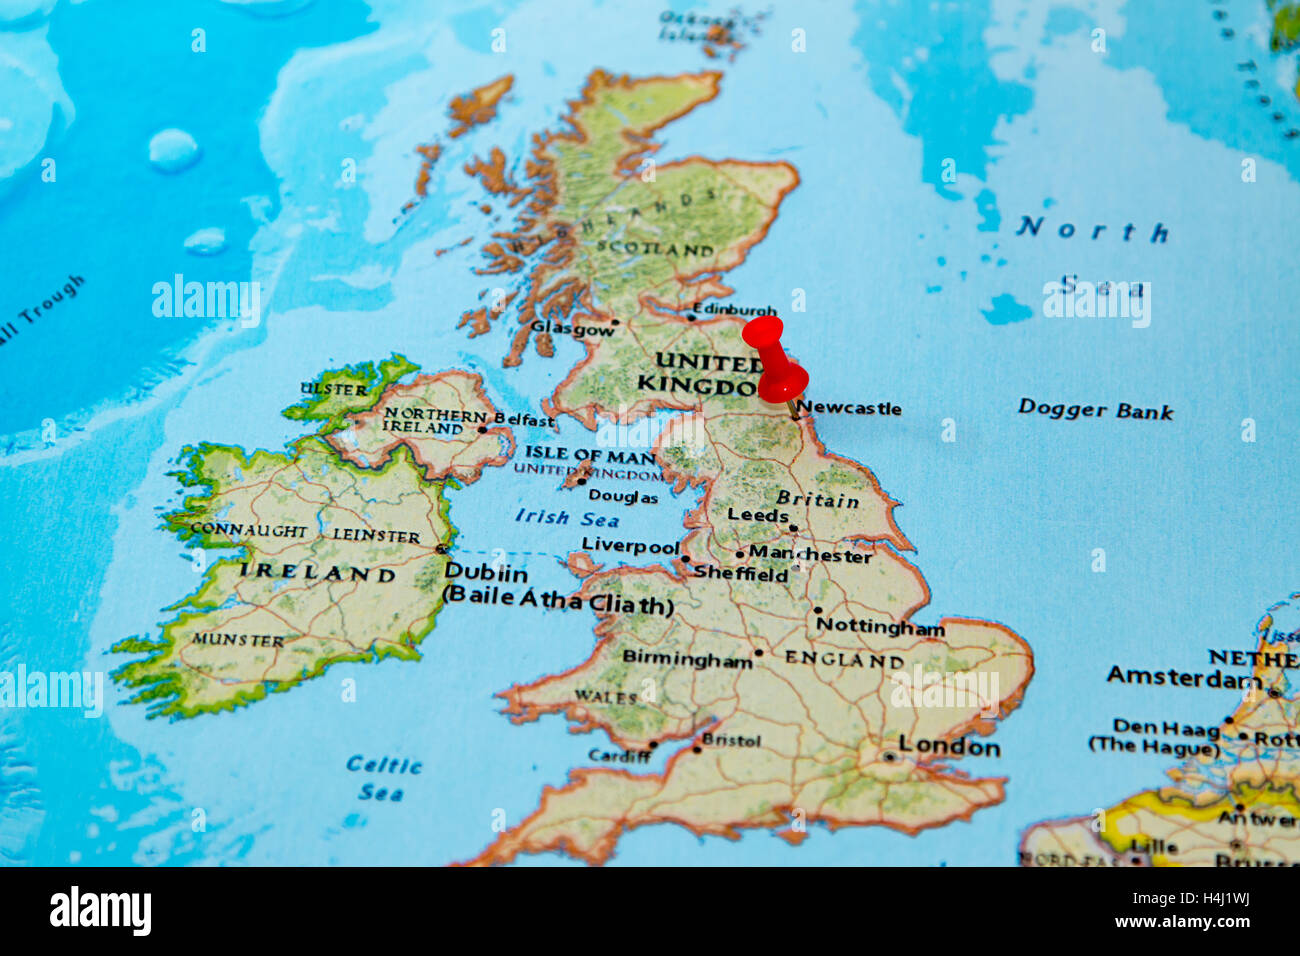 Newcastle UK pinned on a map of Europe Stock Photo 123327838 Alamy